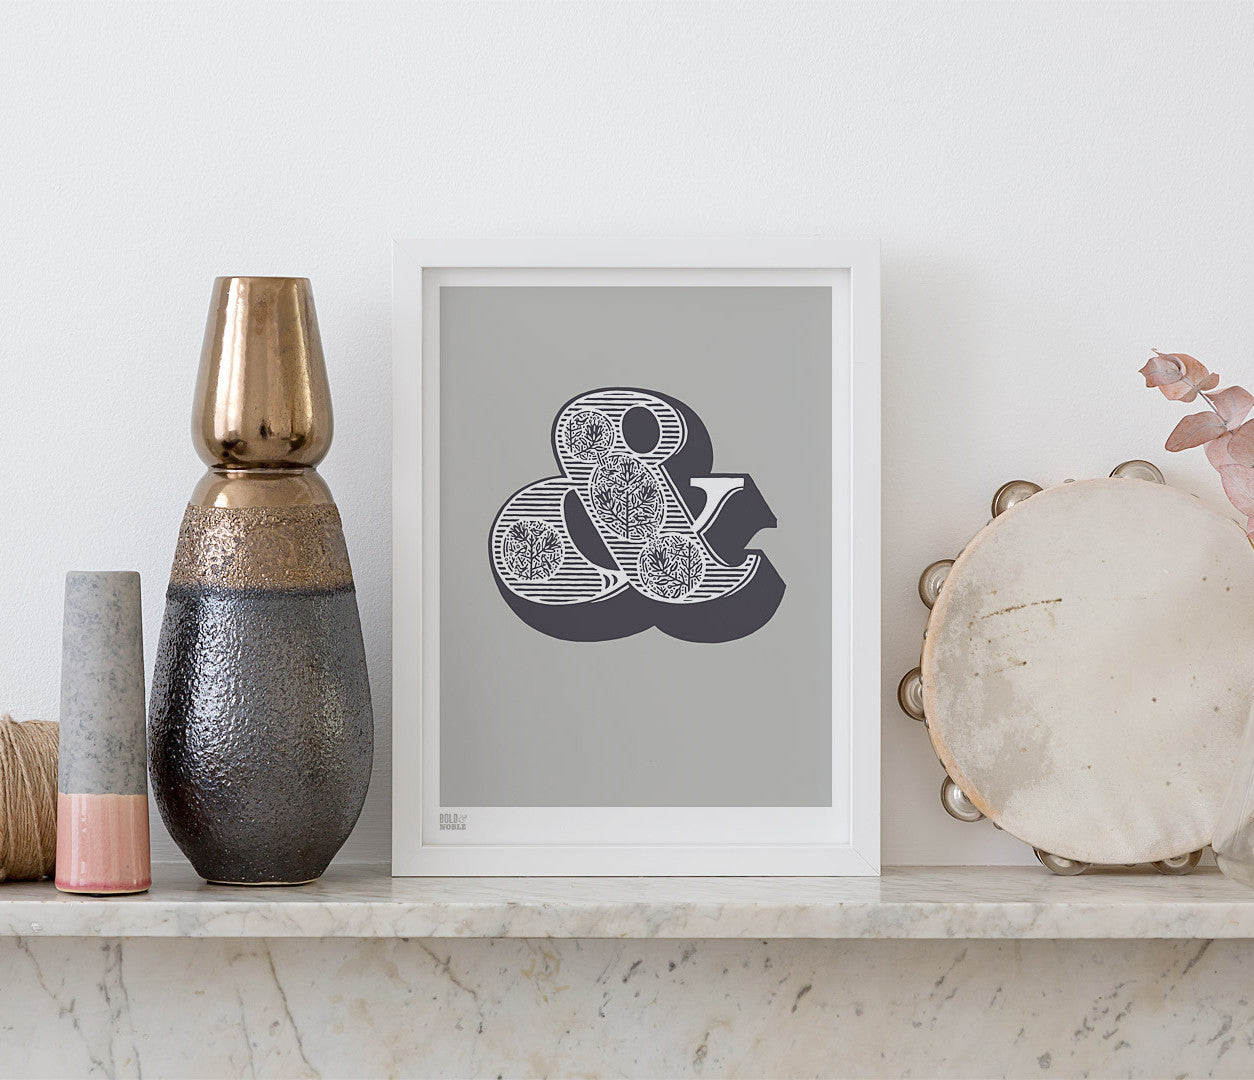 Pictures and Wall Art, Screen printed Ampersand in putty grey